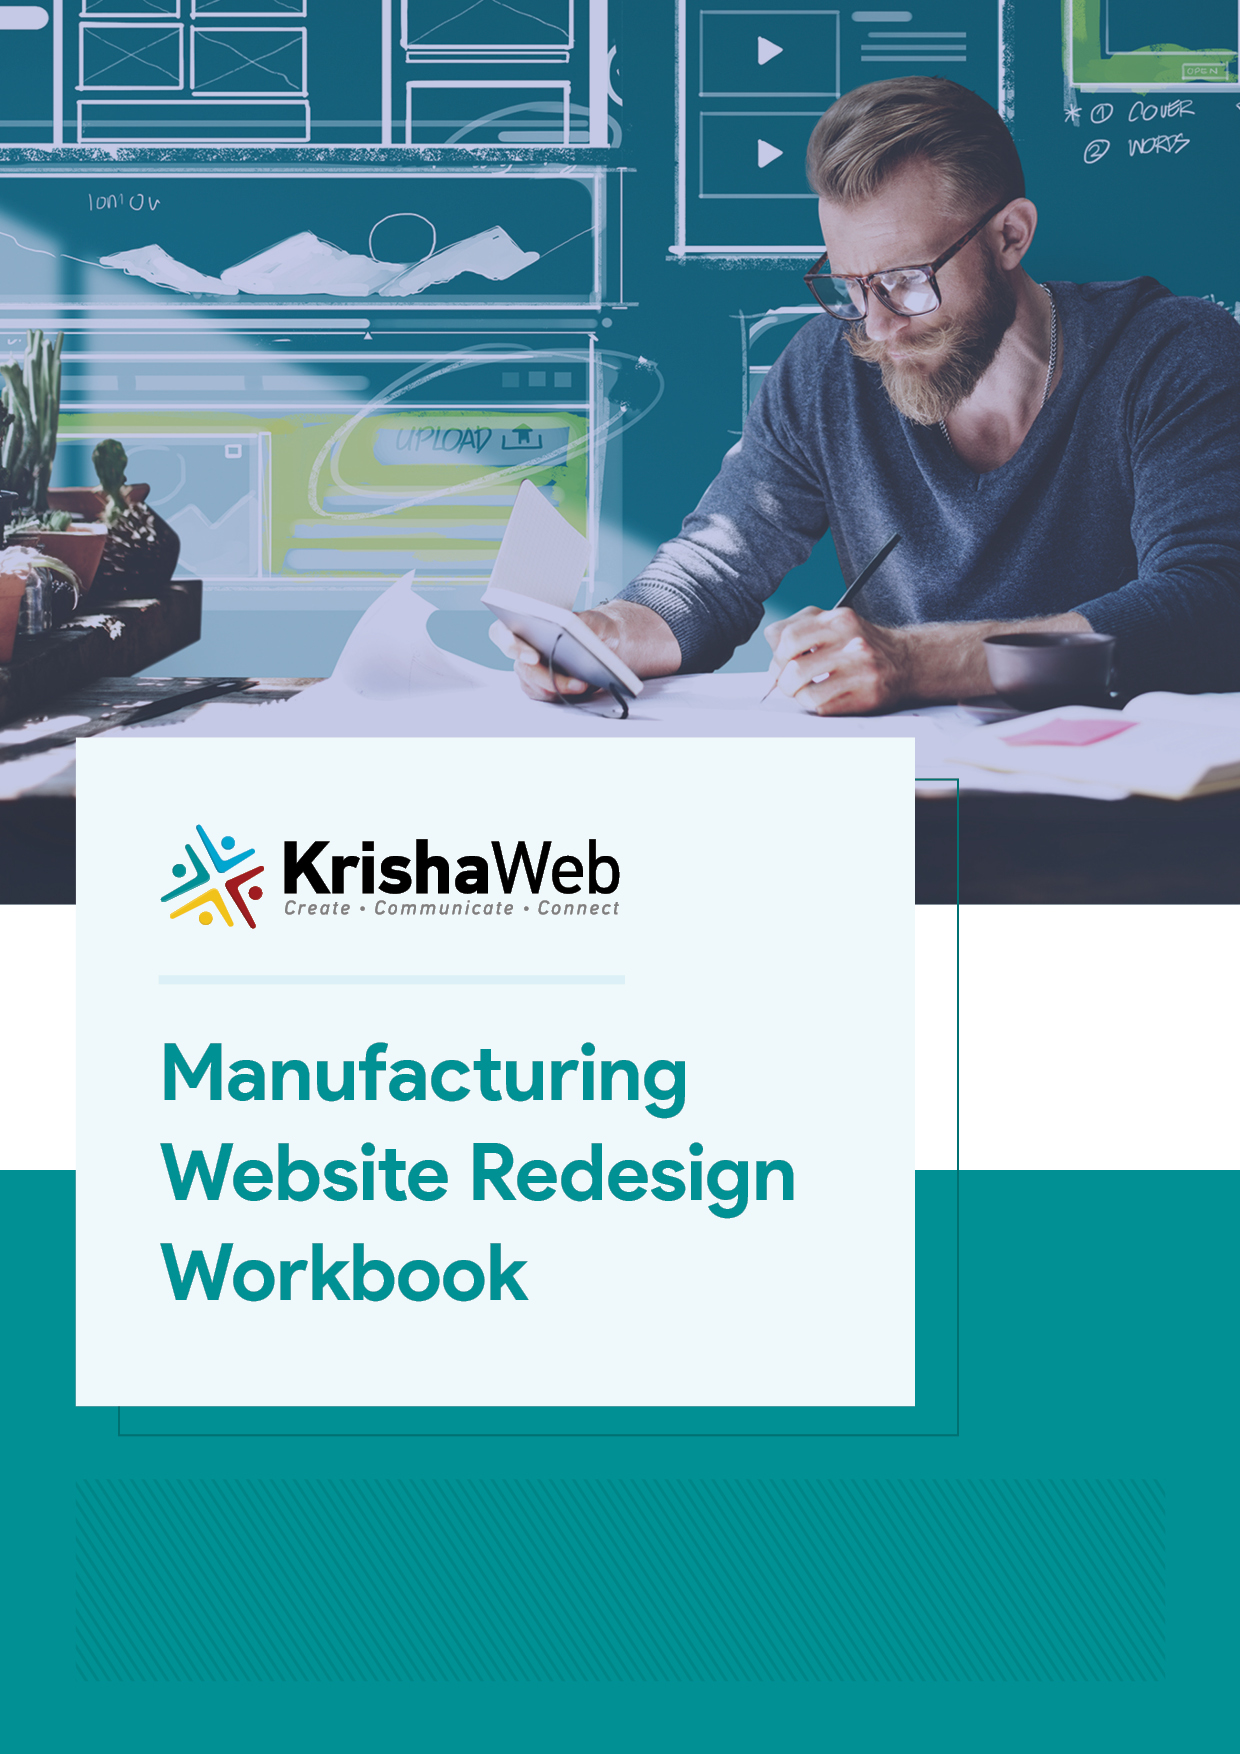 Website Redesign Workbook